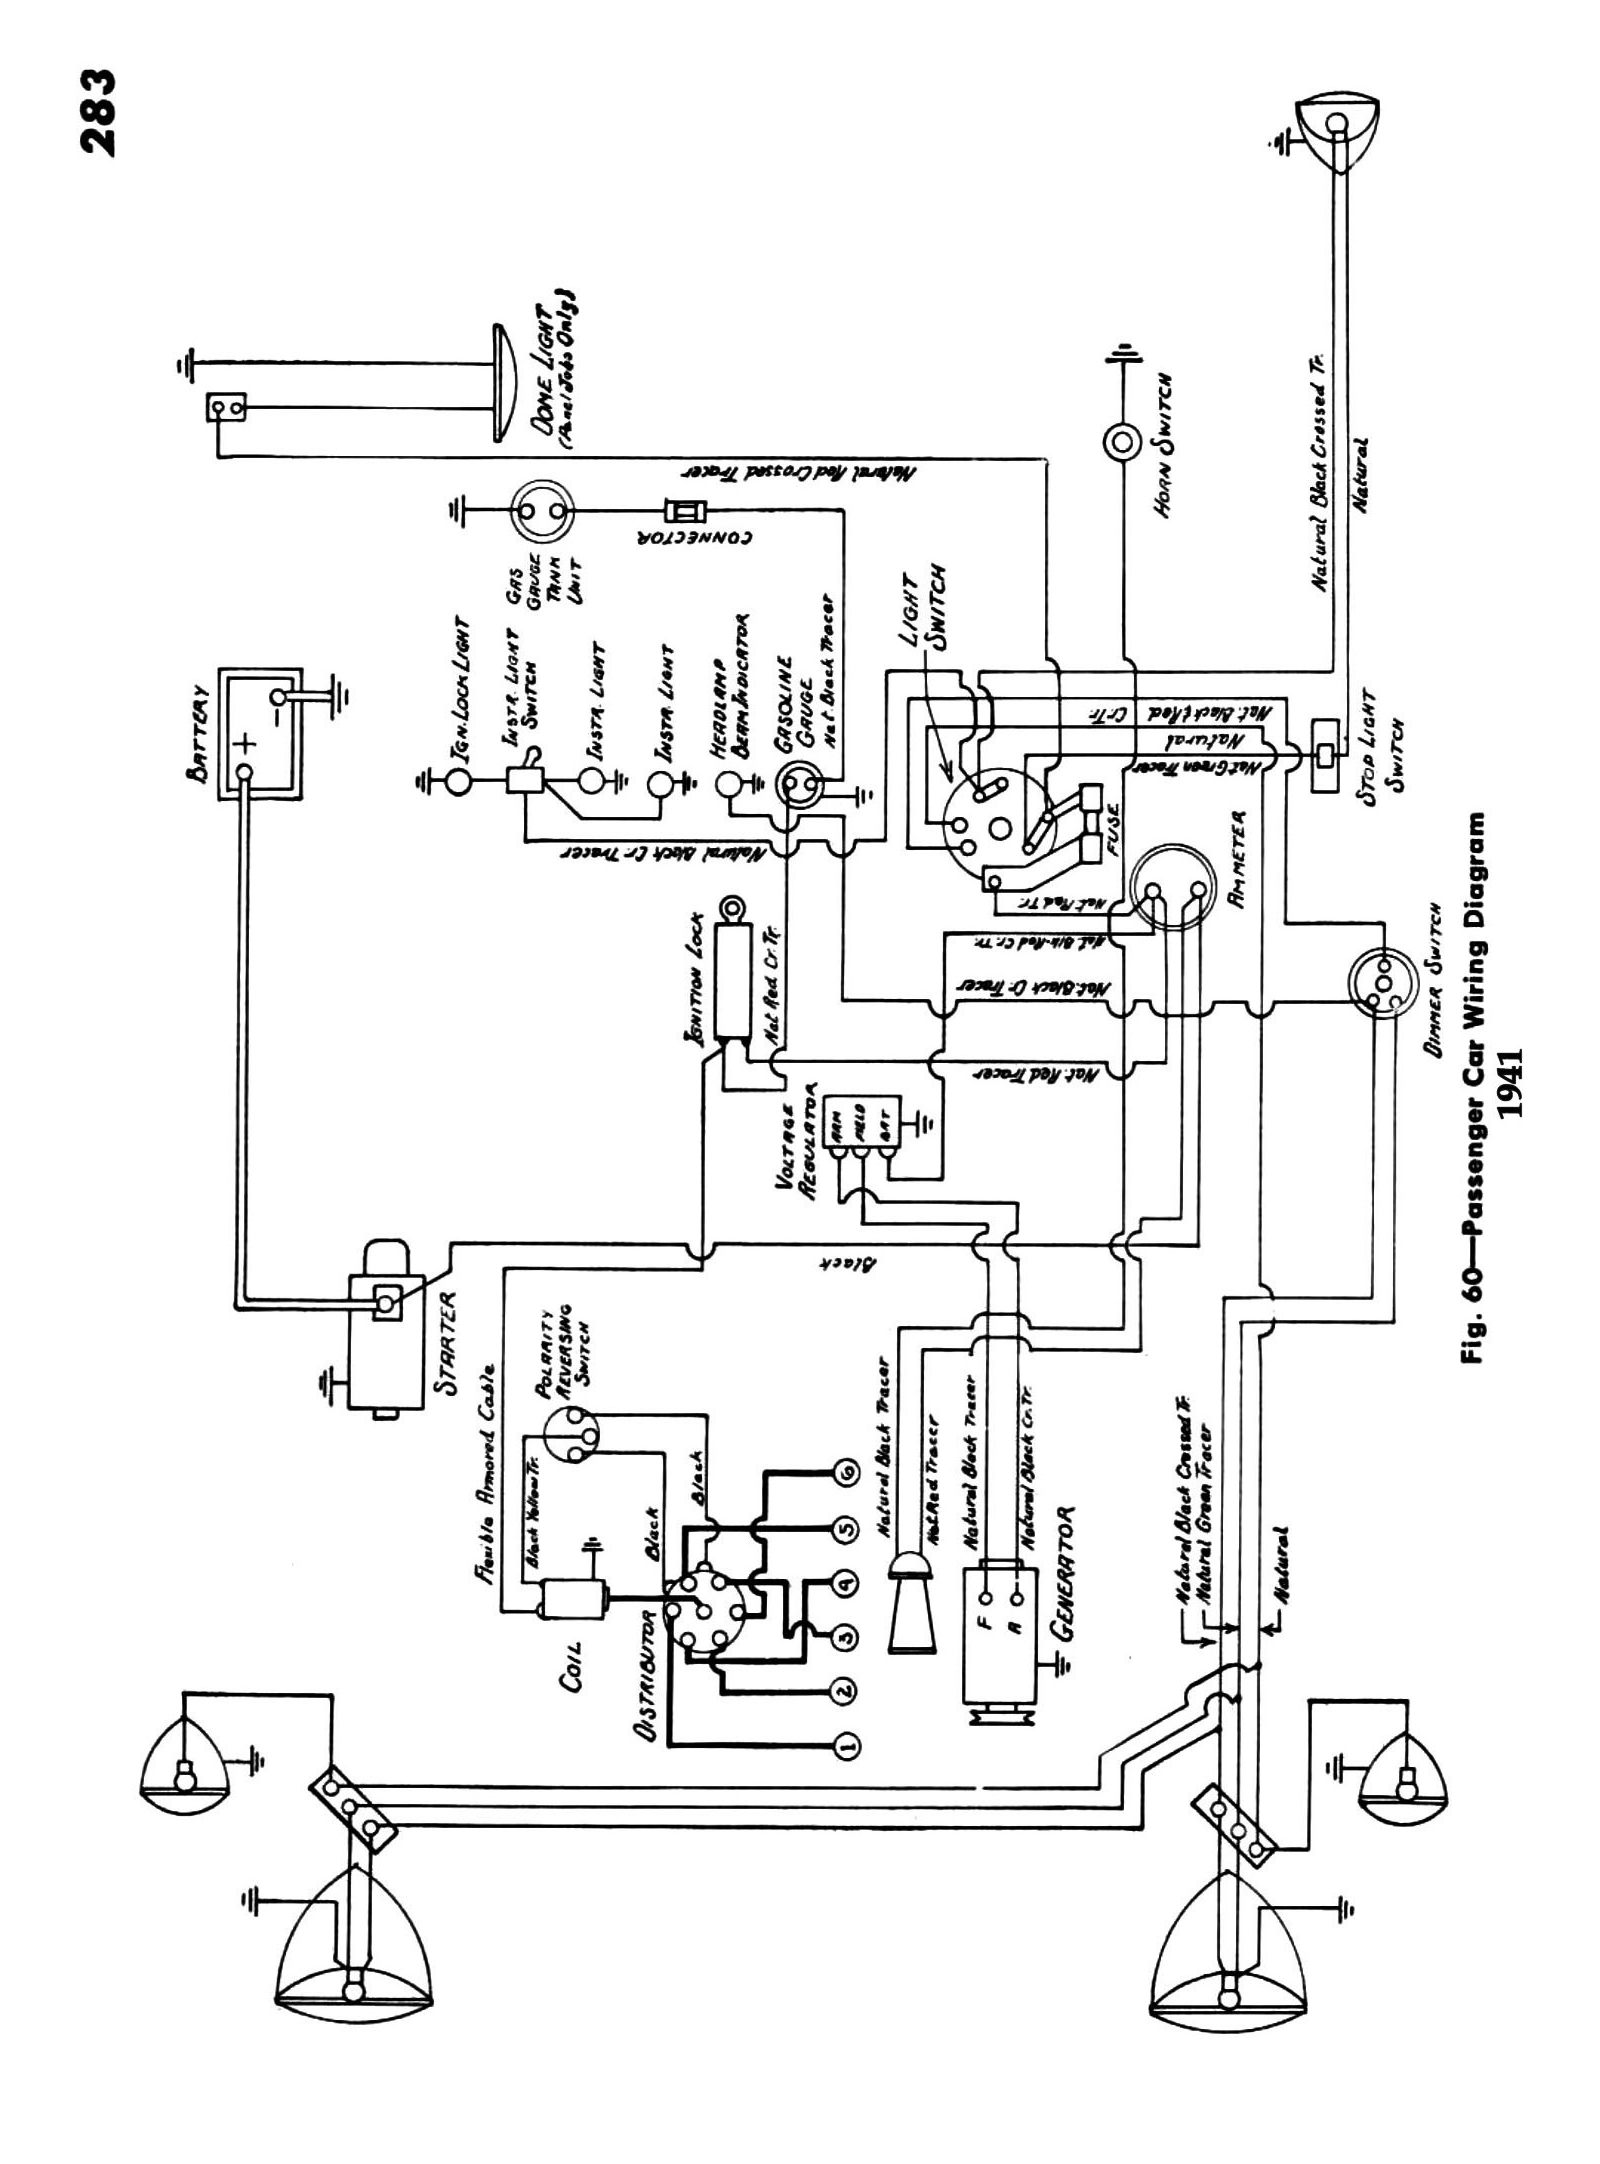 41csm283 simple chevy wiring diagram chevy truck wiring \u2022 wiring diagrams t444e wiring diagram at bakdesigns.co